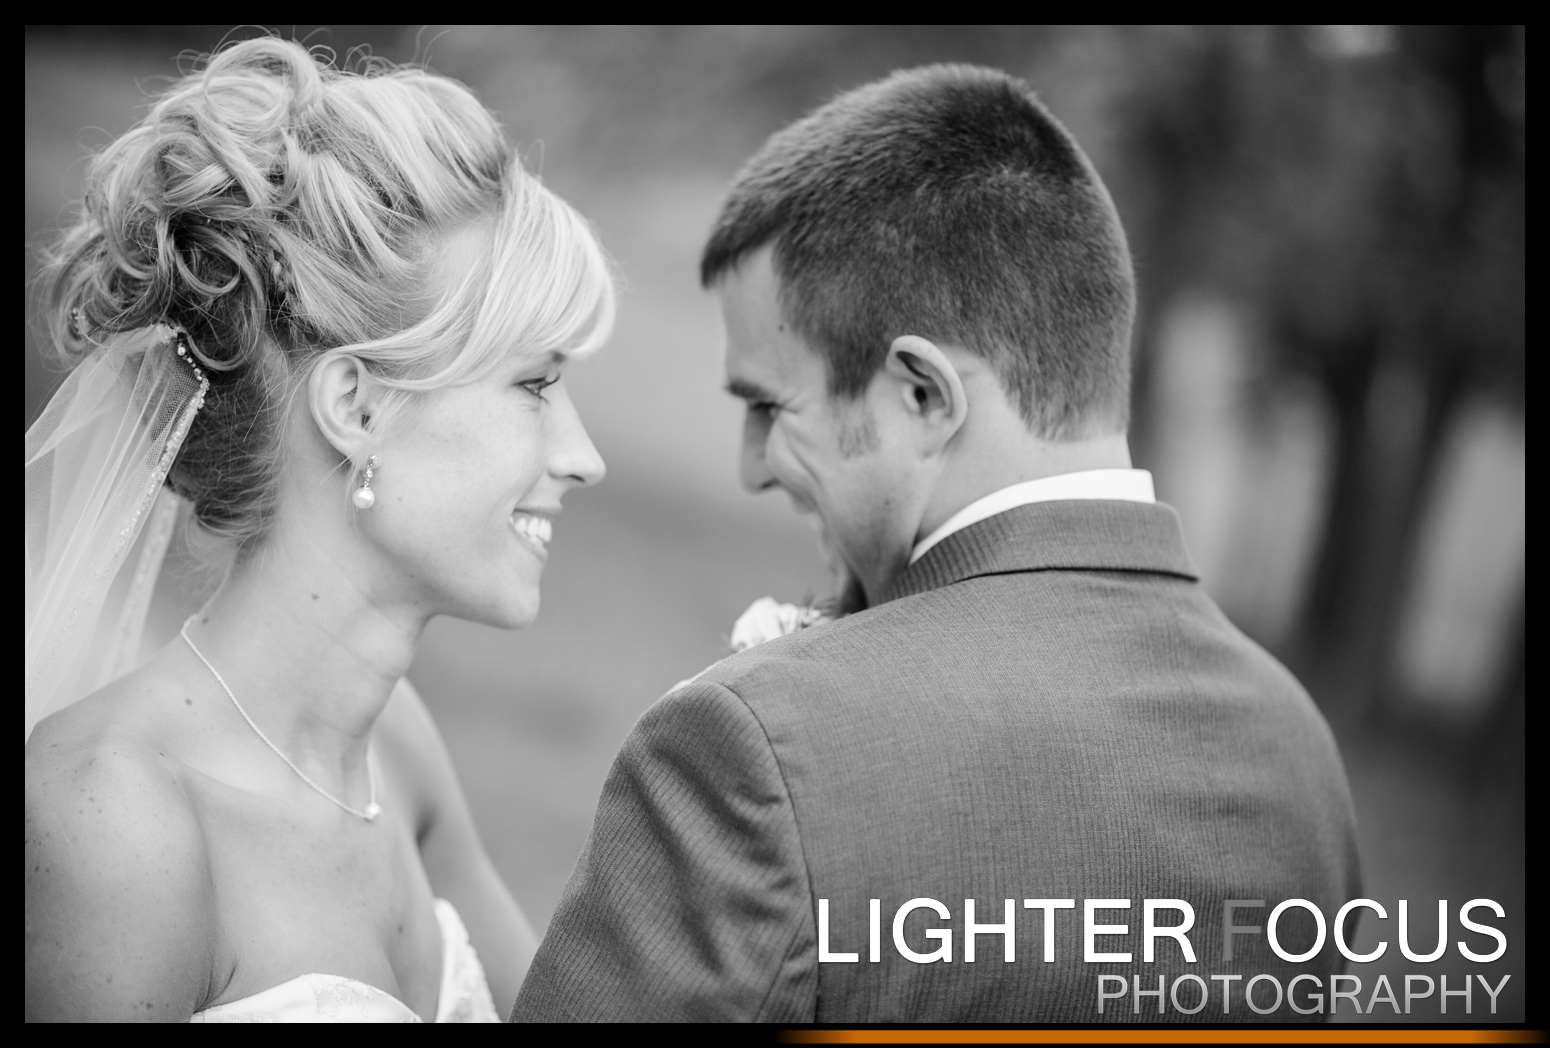 Tyler & Kaley's romantic wedding at the Red Barn Estates